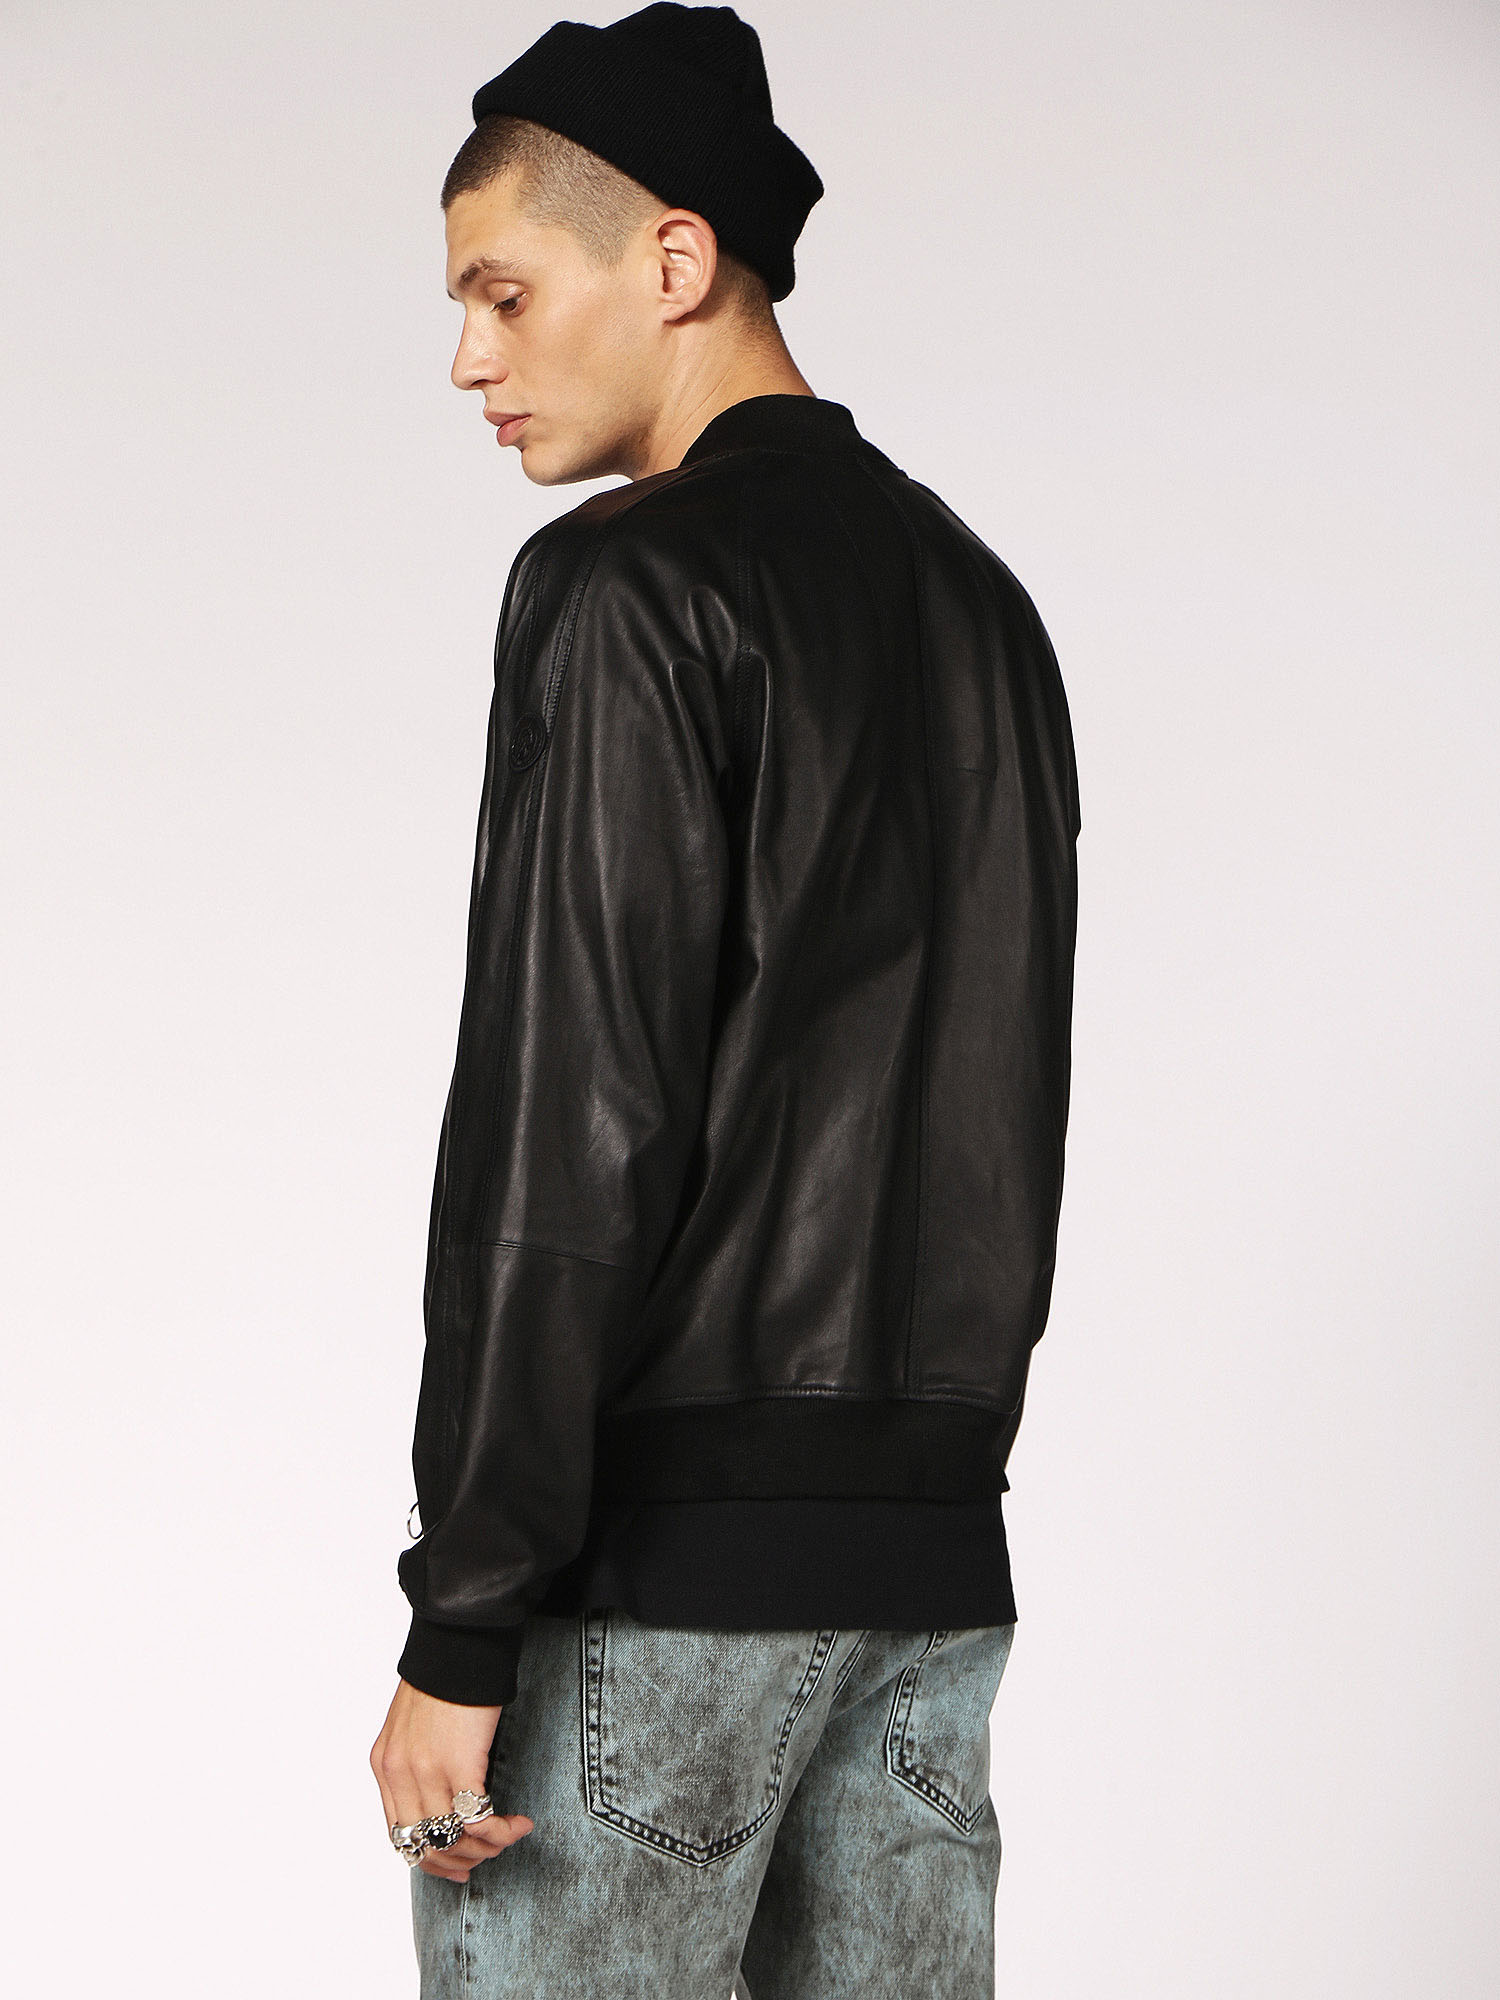 Diesel - L-PINS,  - Leather jackets - Image 2